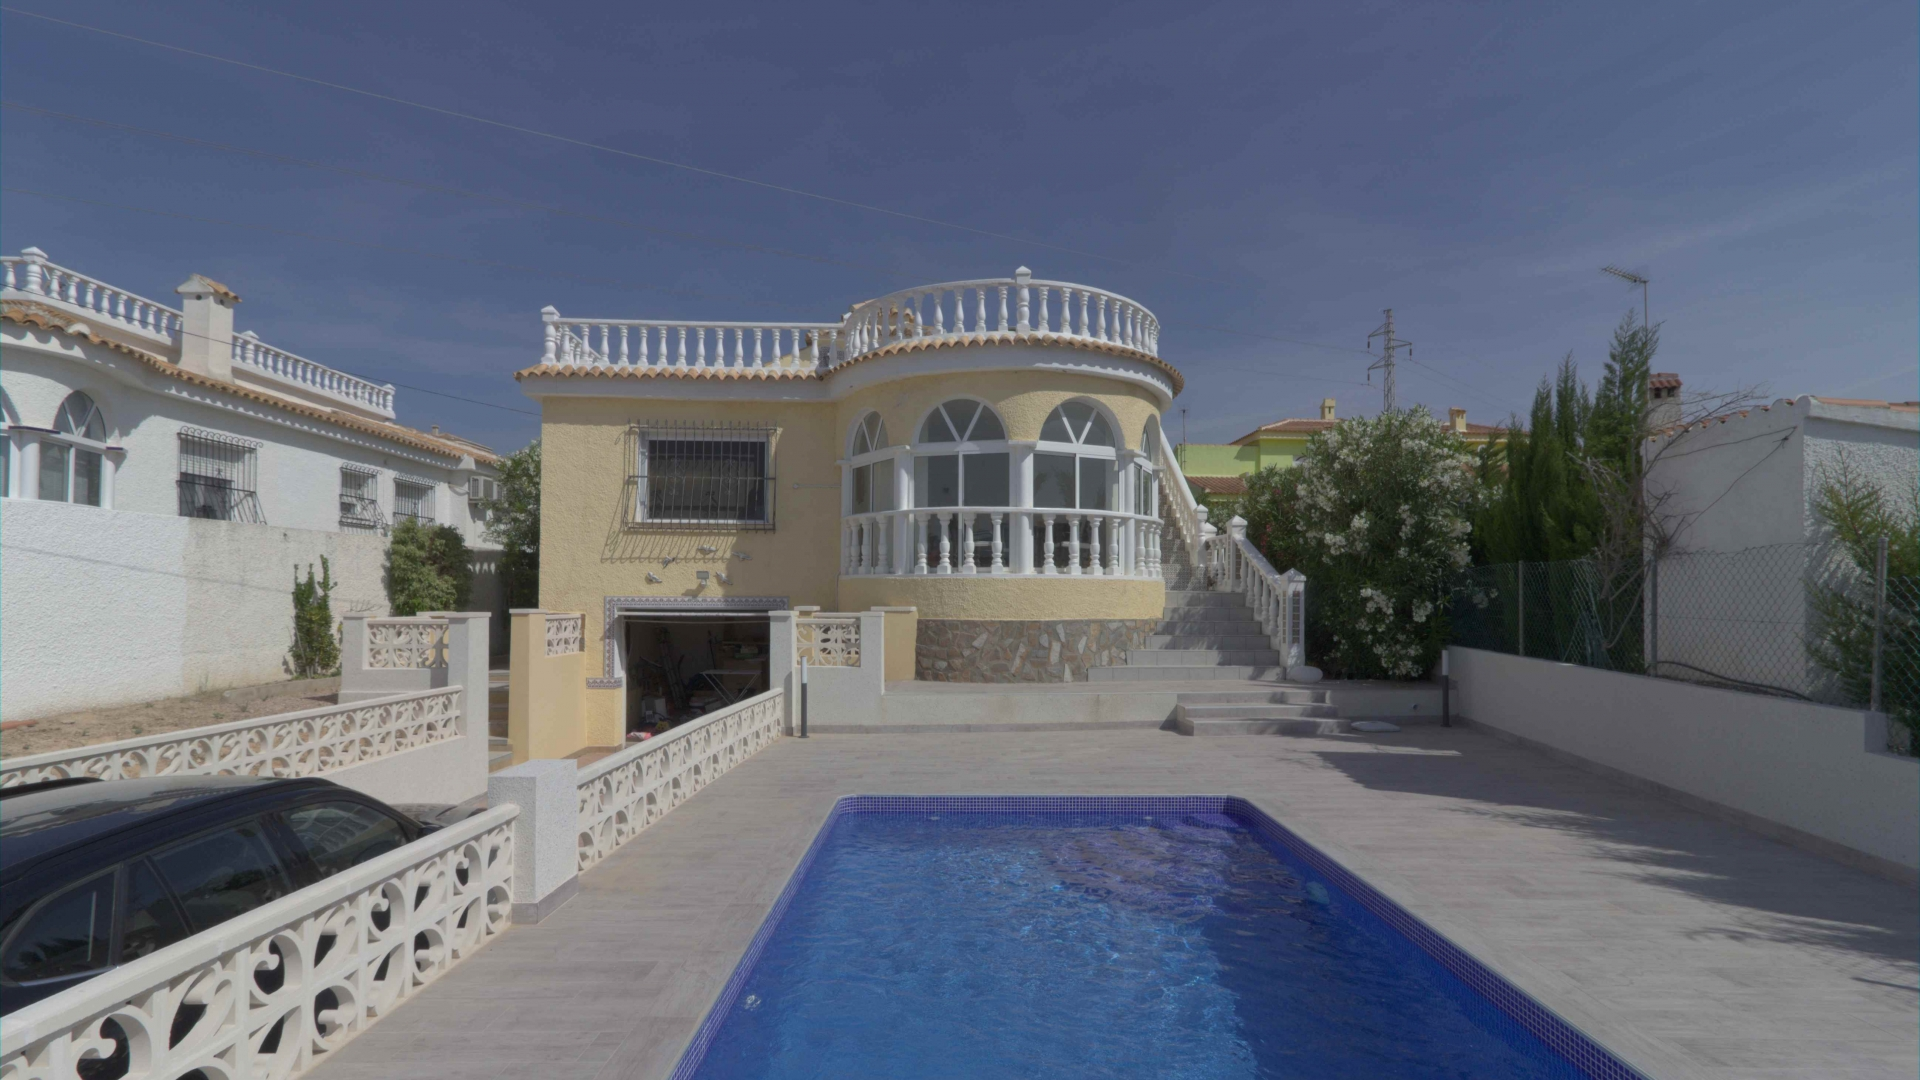 For sale: 3 bedroom house / villa in Ciudad Quesada, Costa Blanca